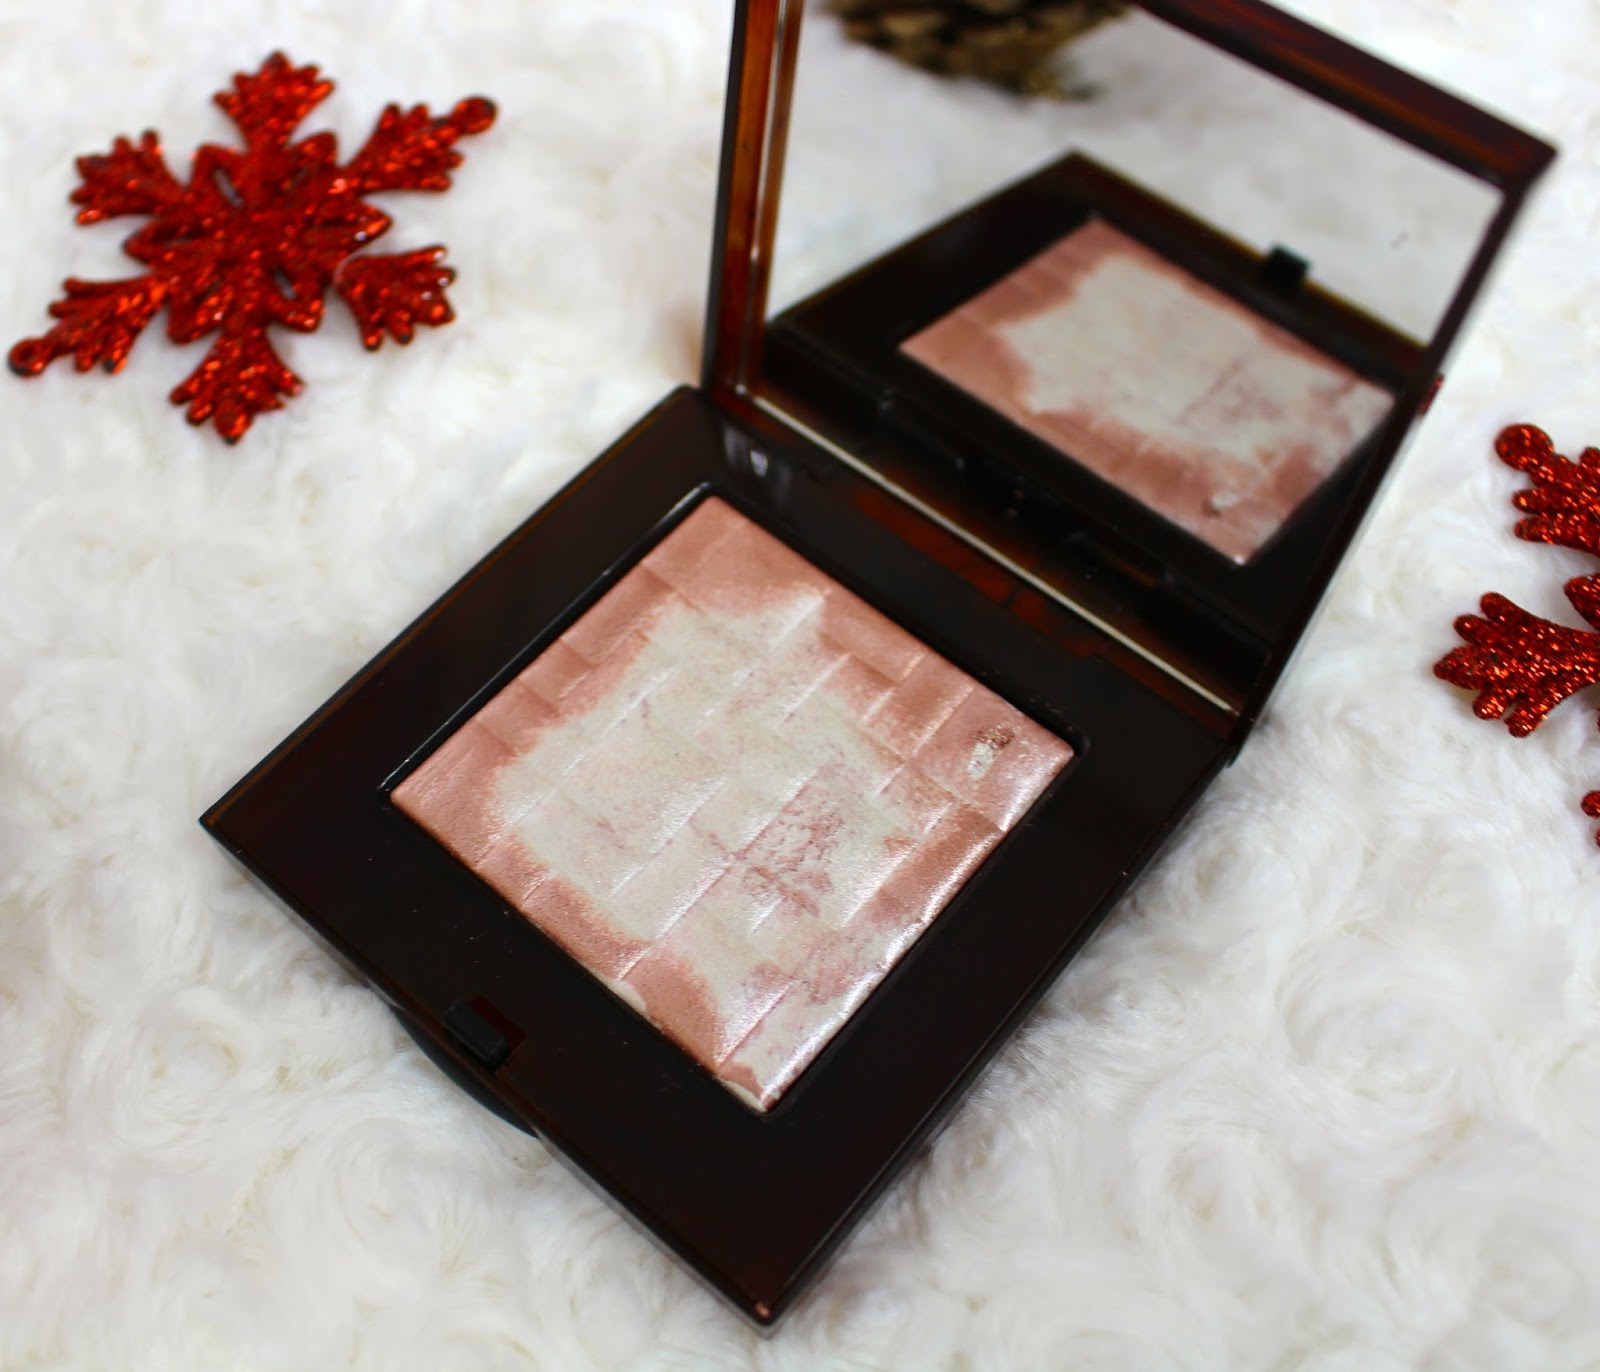 Bobbi Brown Highlight Powder Pink Glow, highlight powder, Bobbi Brown,  Bobbi Brown Highlight Powder, Review, through chelsea's eyes,